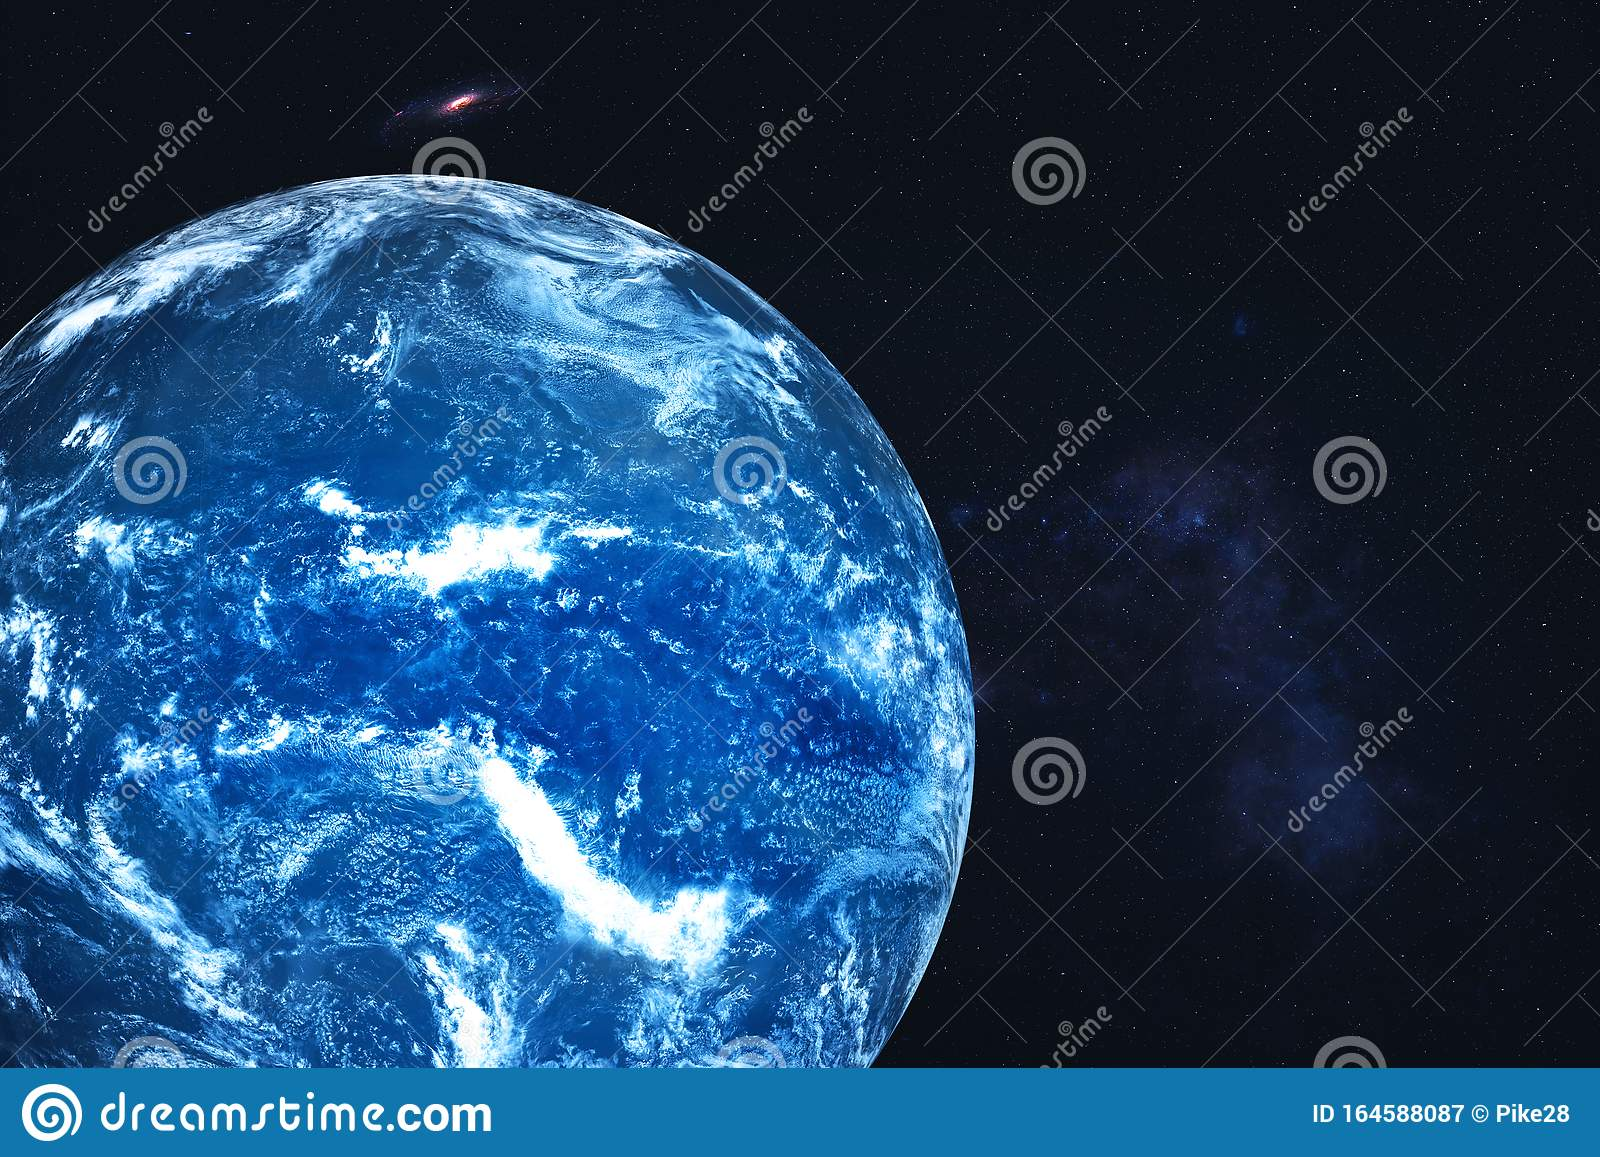 Neptune Planet Of Solar System With White Atmosphere In